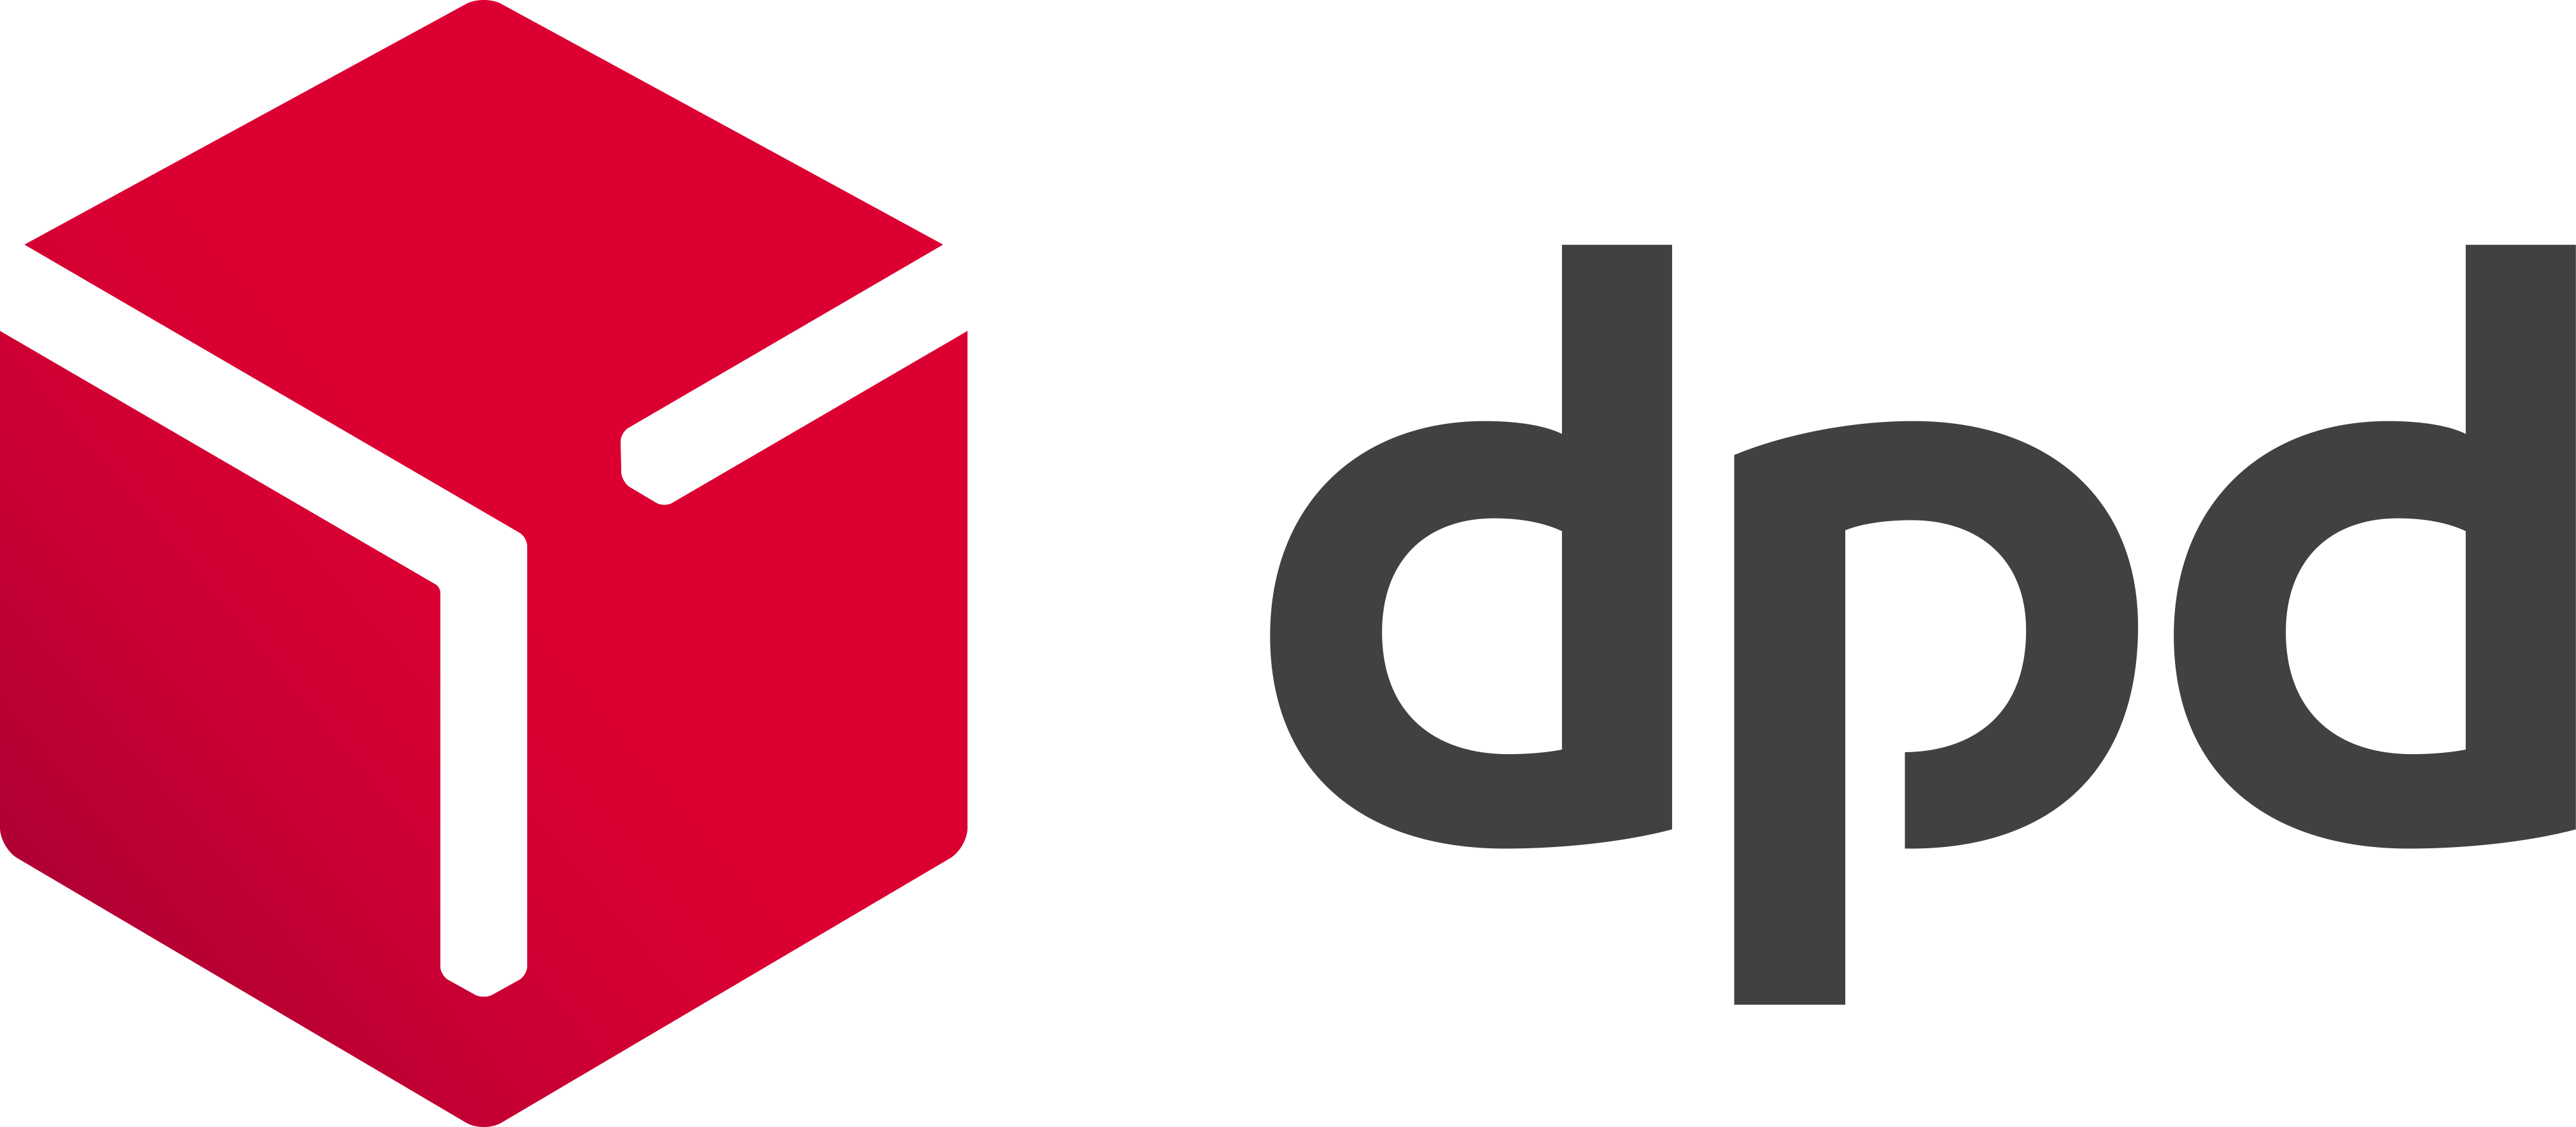 DPD_logo-red-2015.png